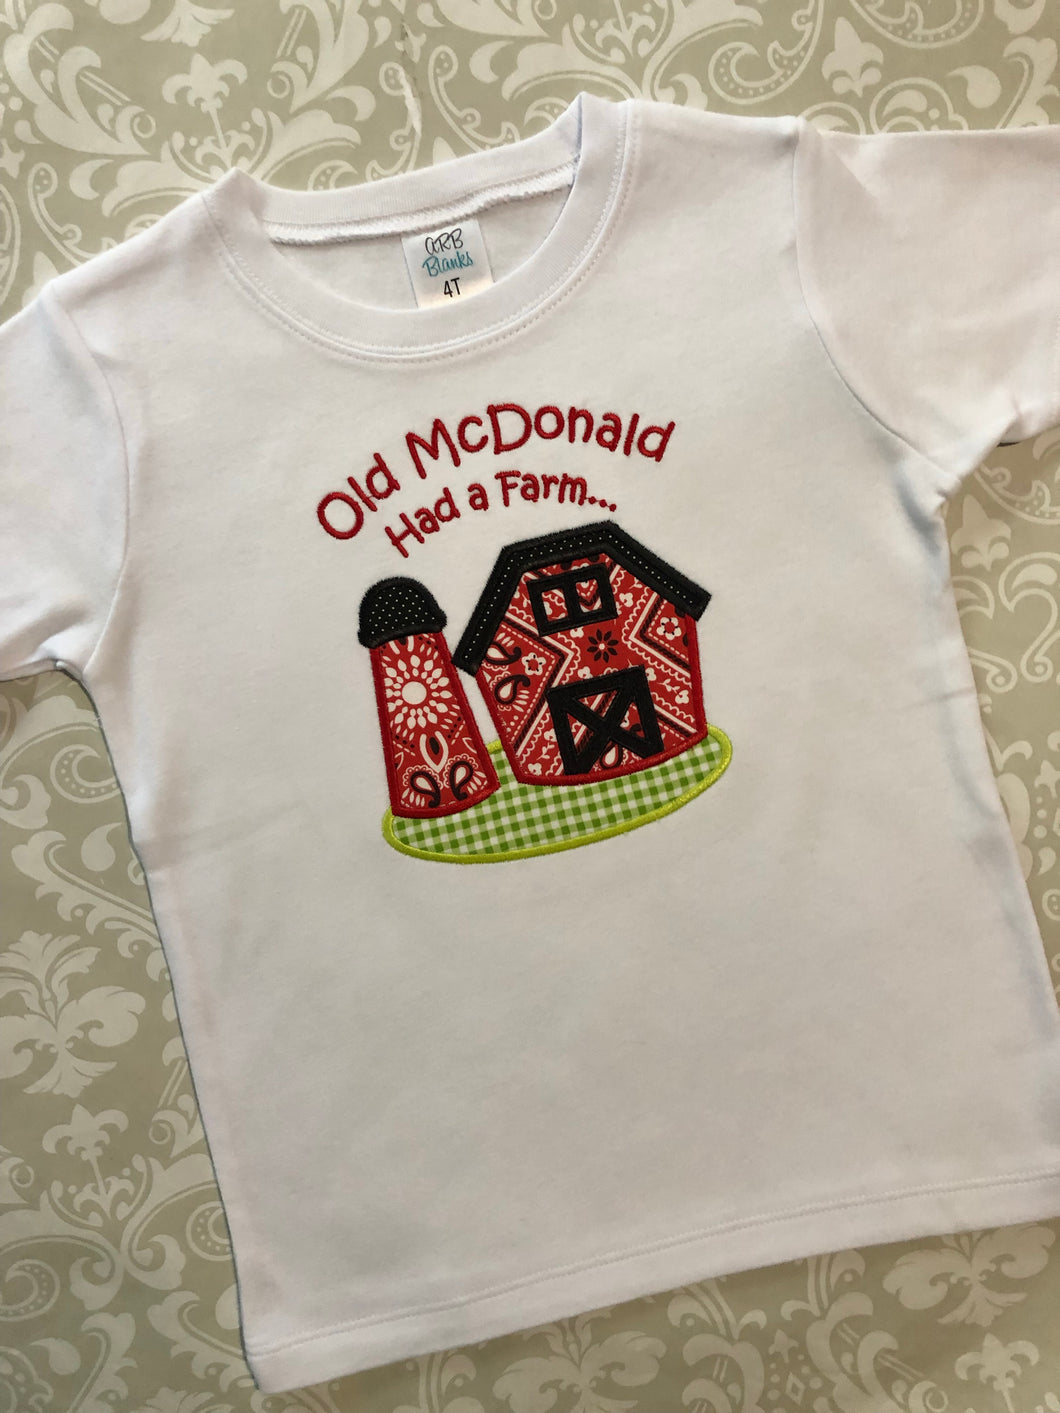 Old McDonald farm applique tee